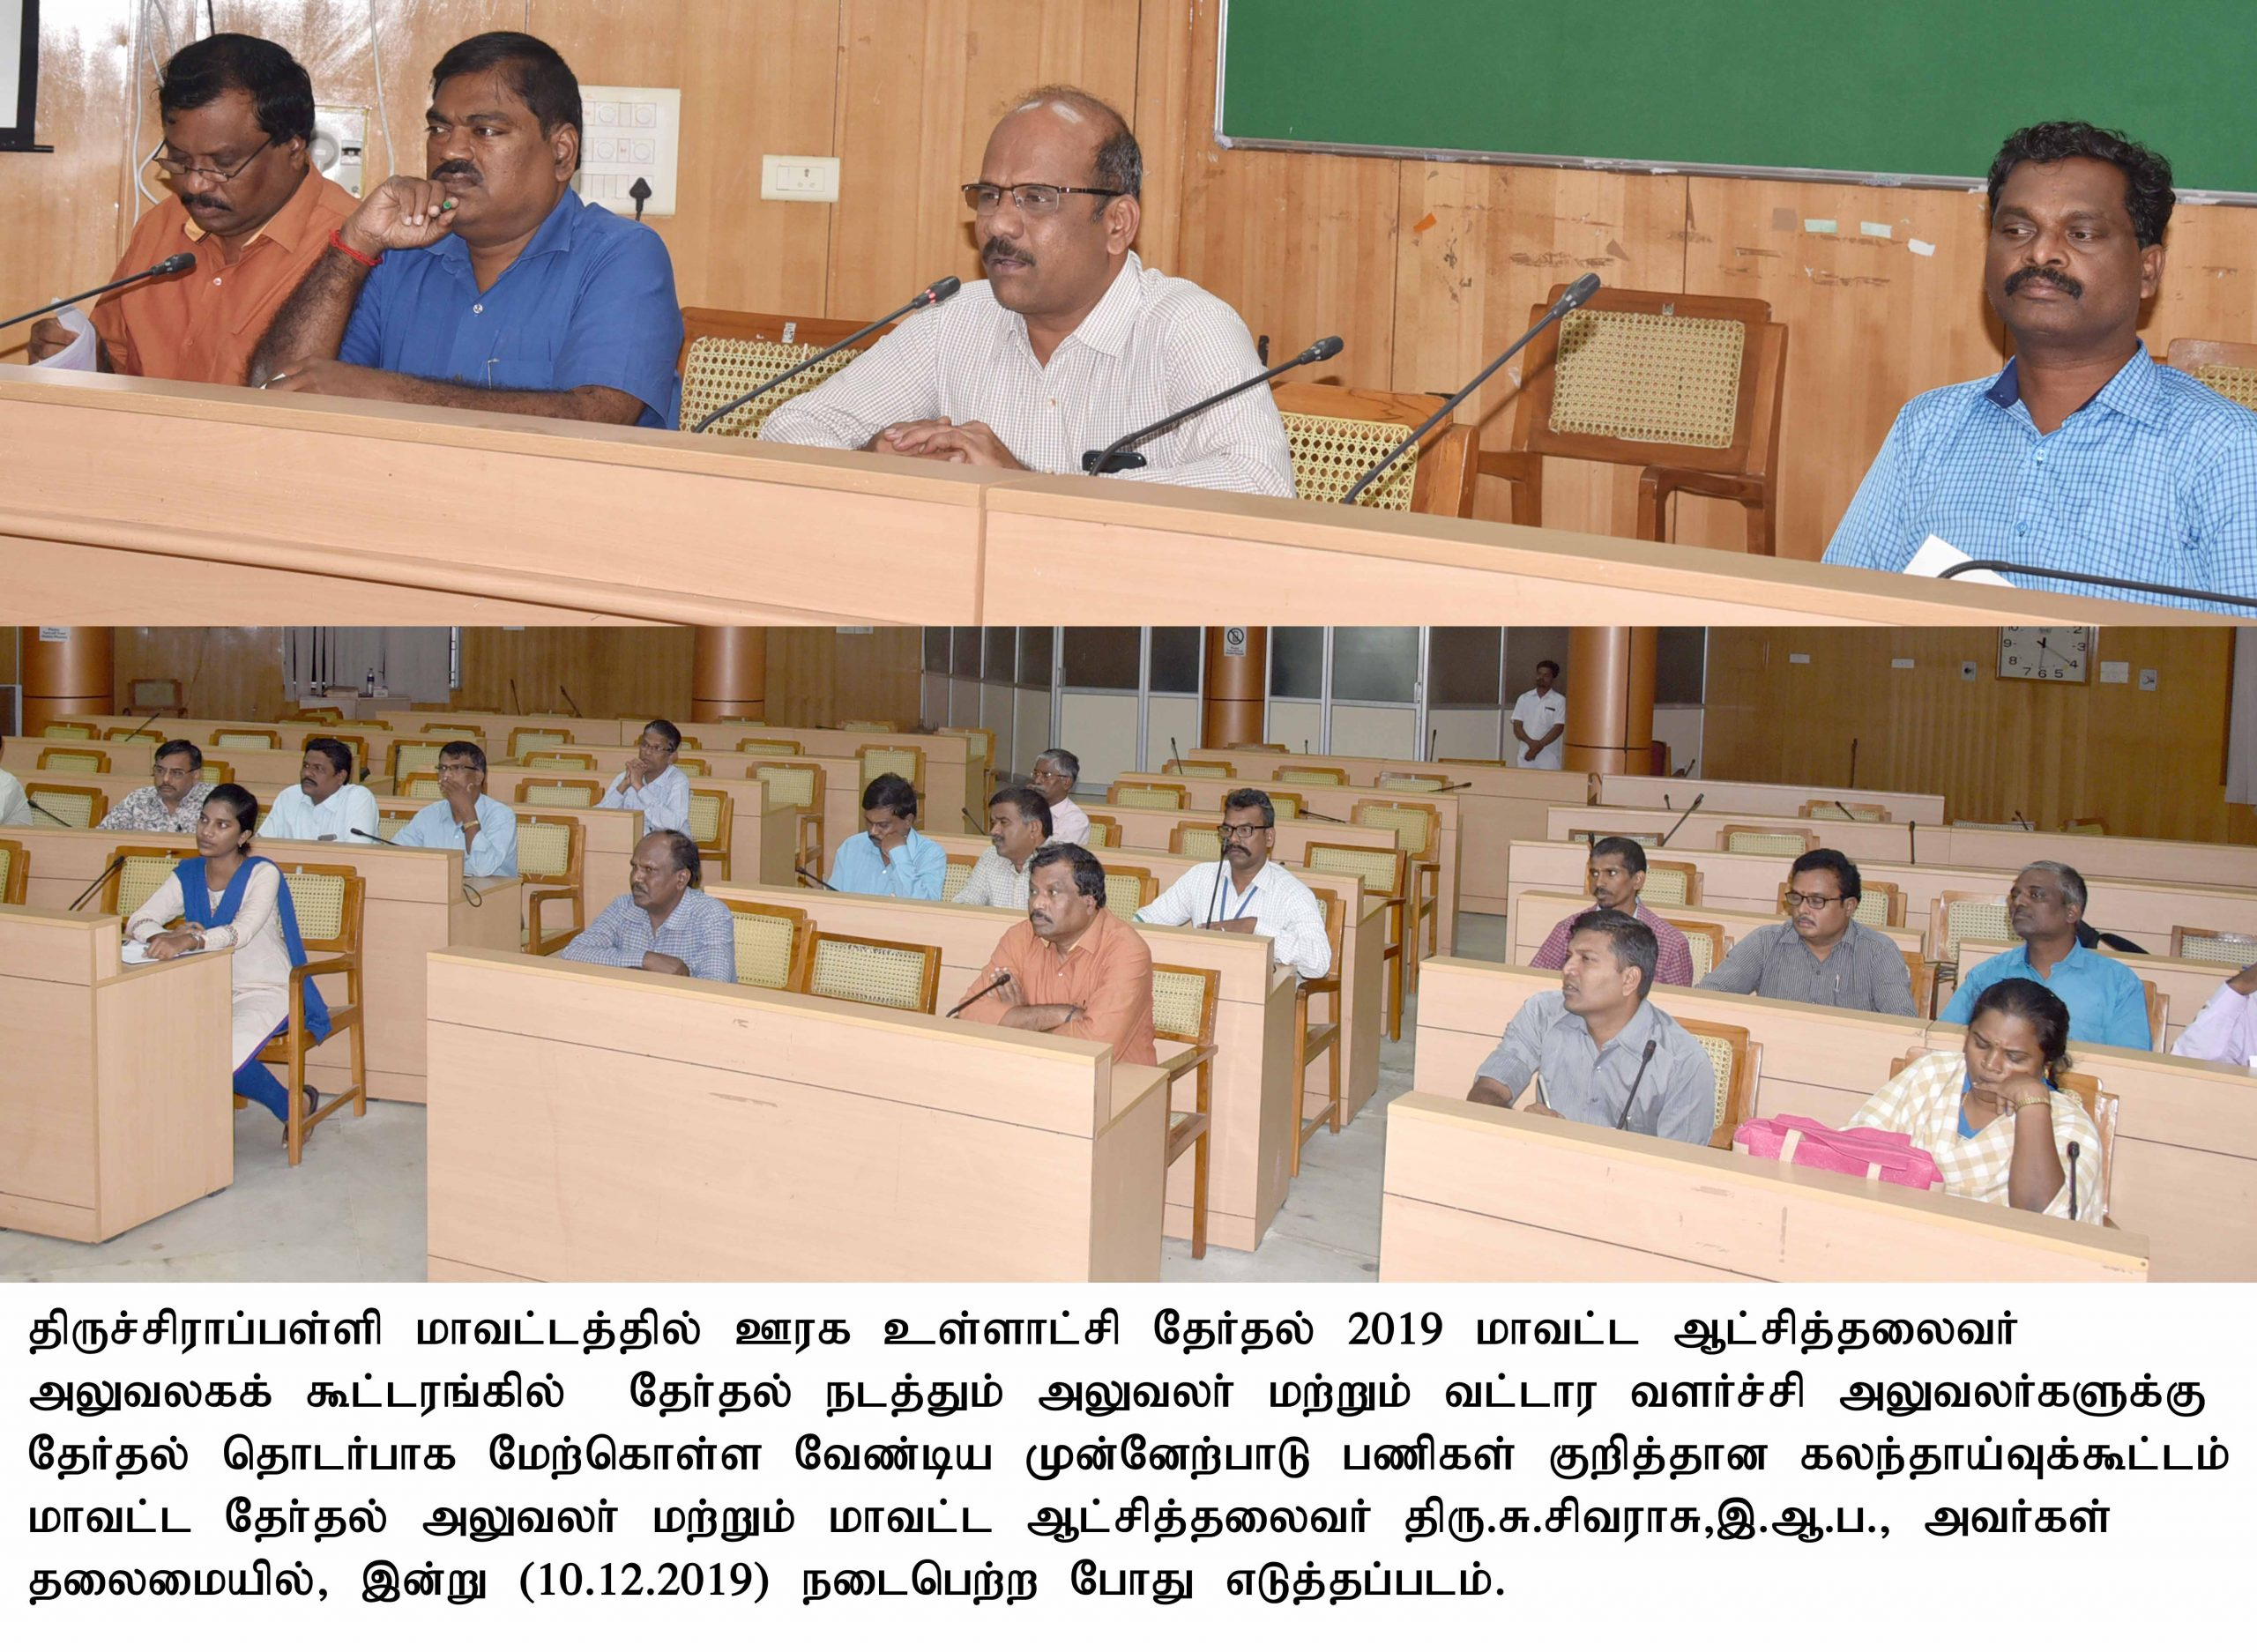 Local Body Elections 2019 - Preparatory Meeting held on 10.12.2019